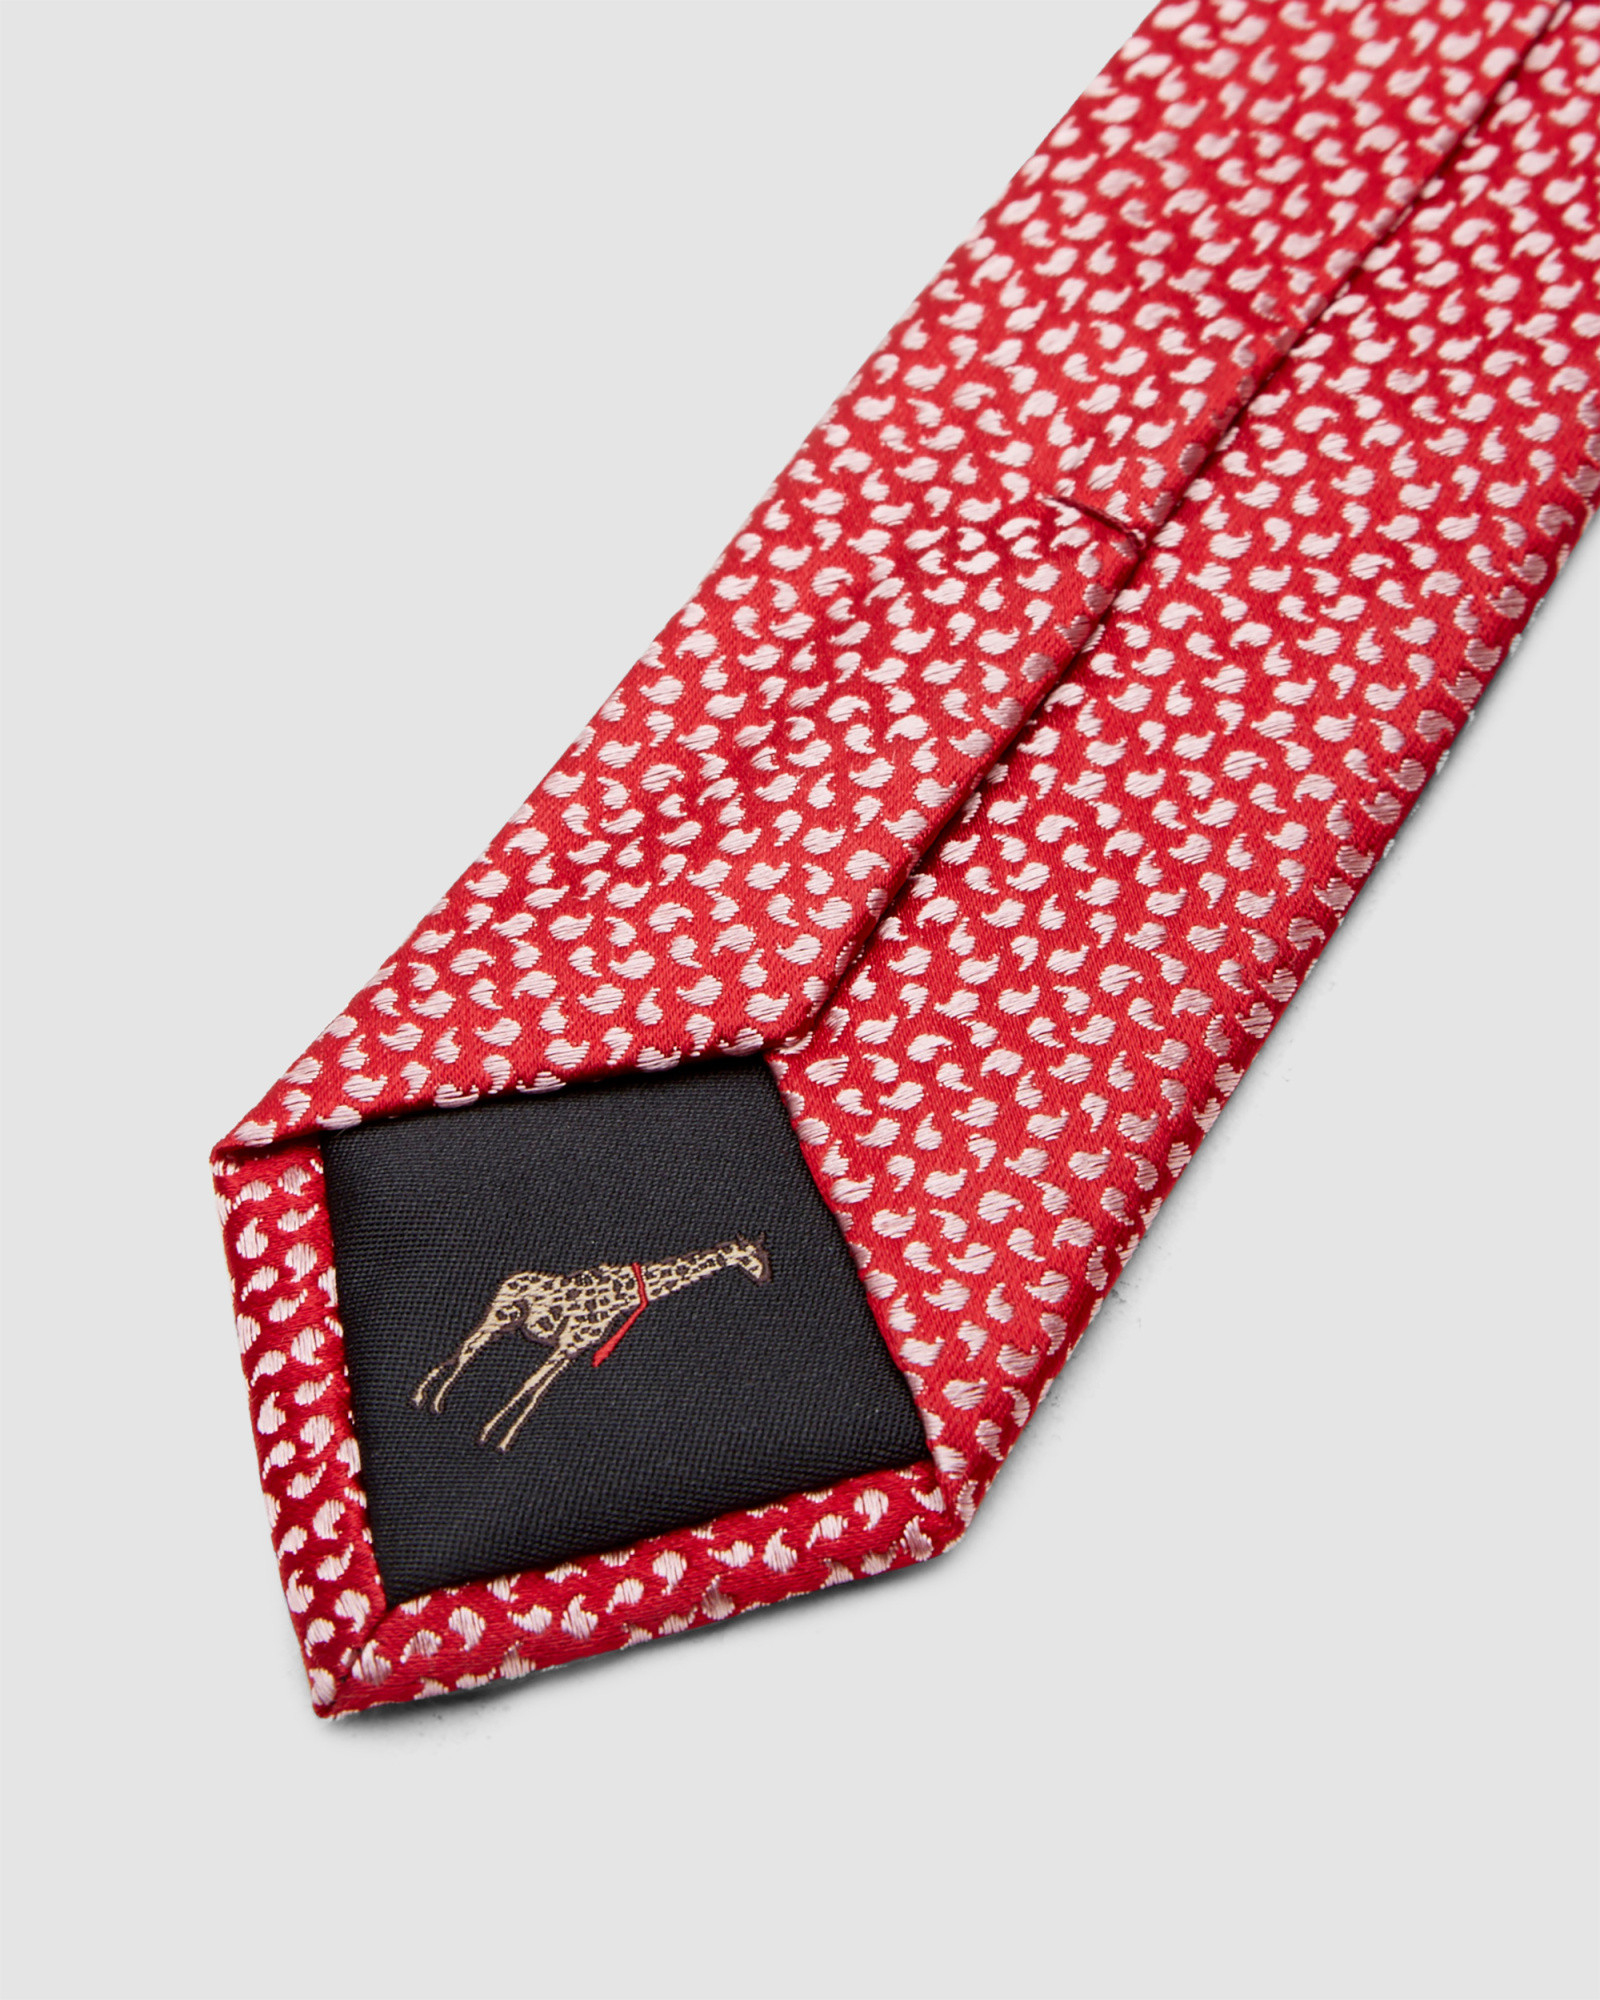 Paisley Jacquard Silk Tie Ted Baker Buy Cheap Free Shipping Latest Discount Online Cheap x7V4bpztZ